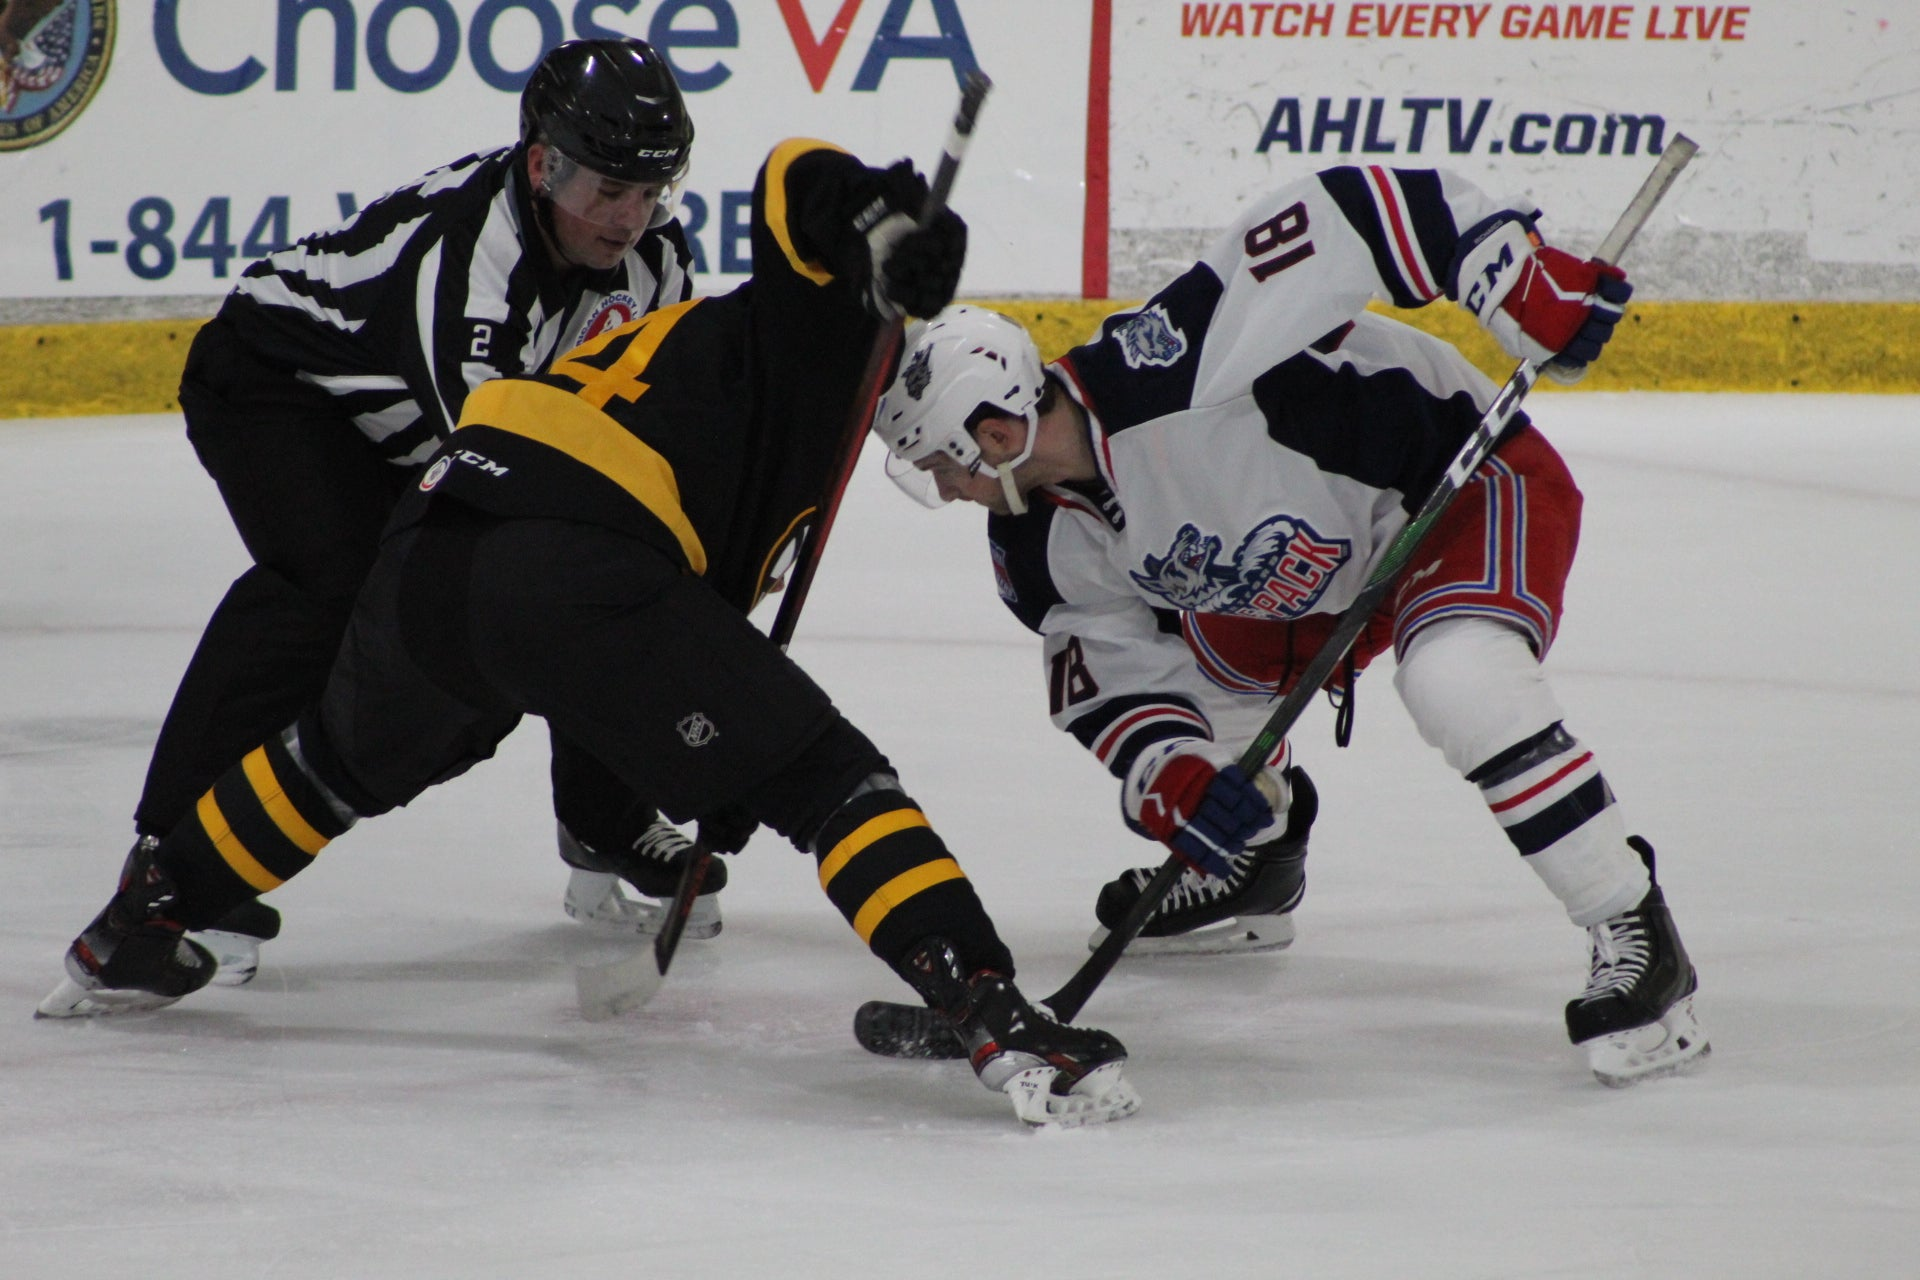 HARTFORD WOLF PACK SCORE THREE FIRST PERIOD GOALS, TAKE DOWN P-BRUINS, 4-2